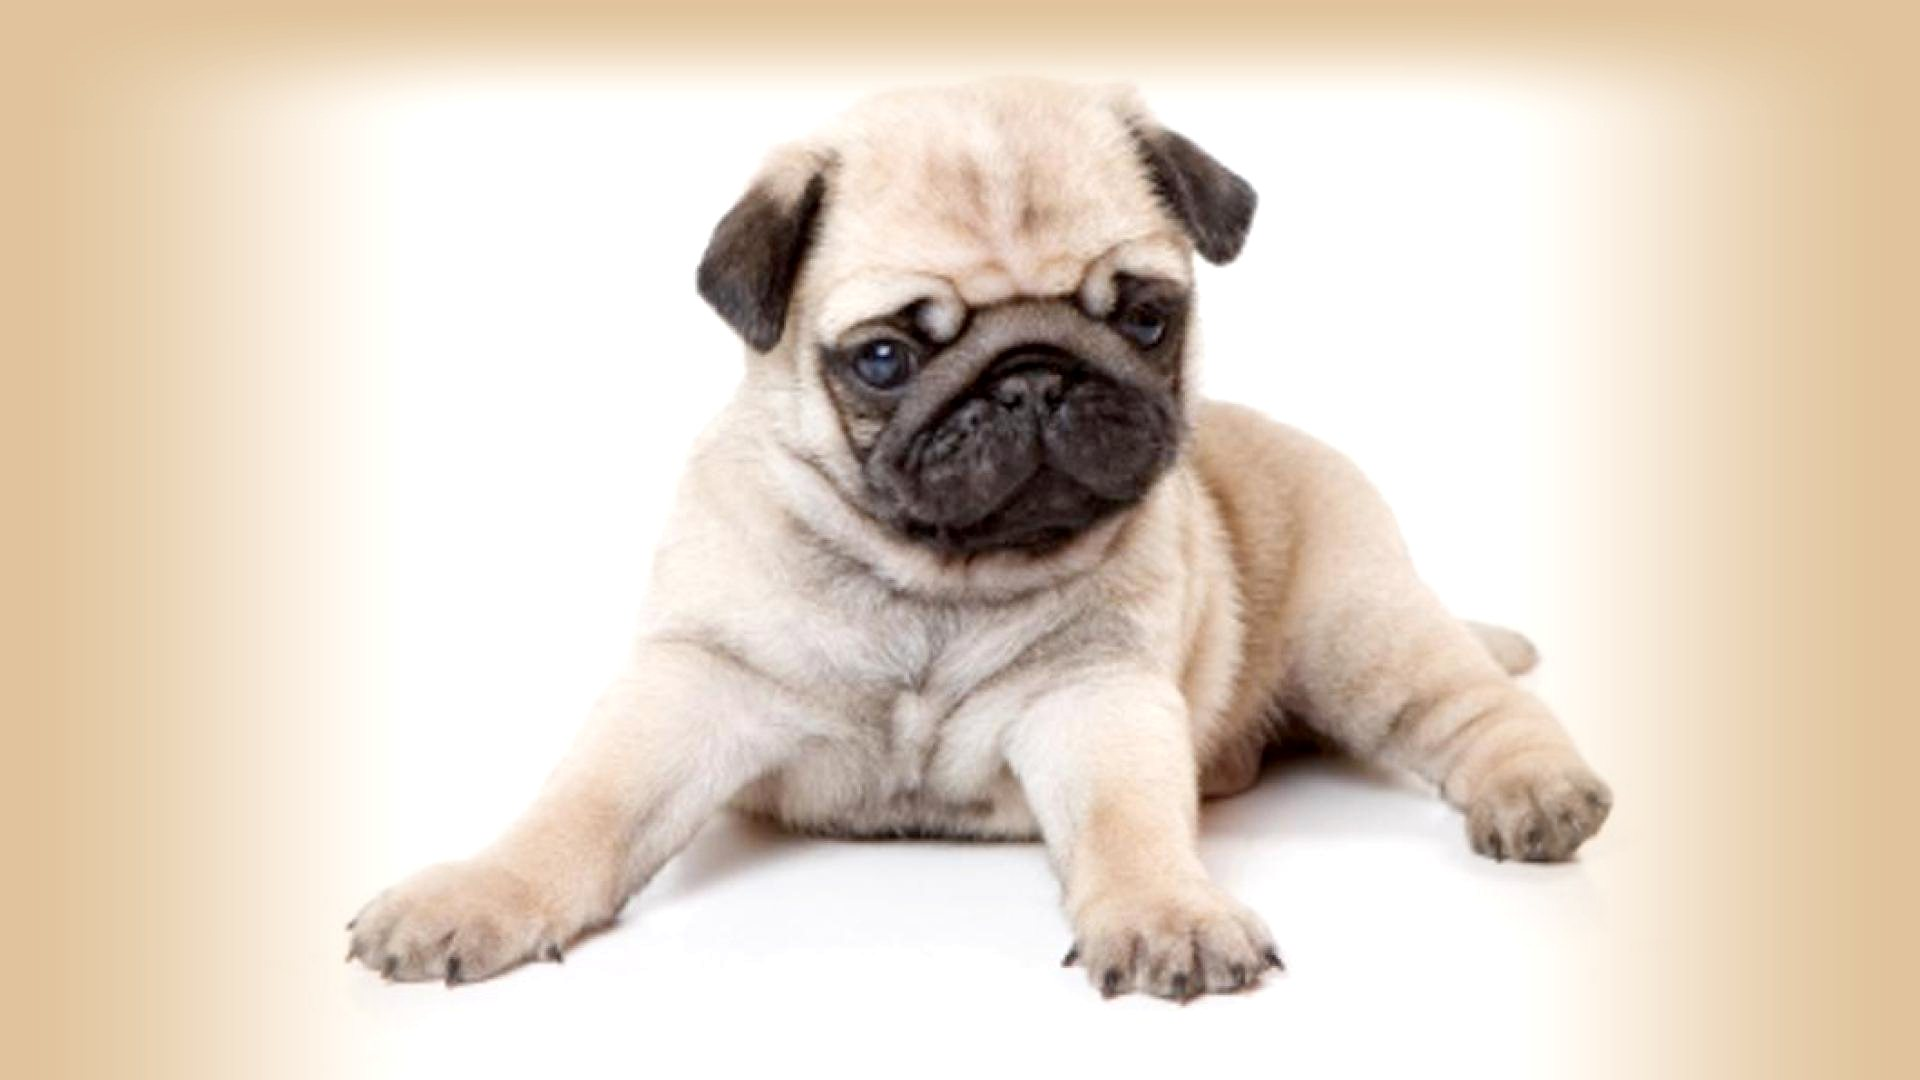 Cute Black Pug Puppy Wallpaper Hd Pictures To Pin 1920x1080